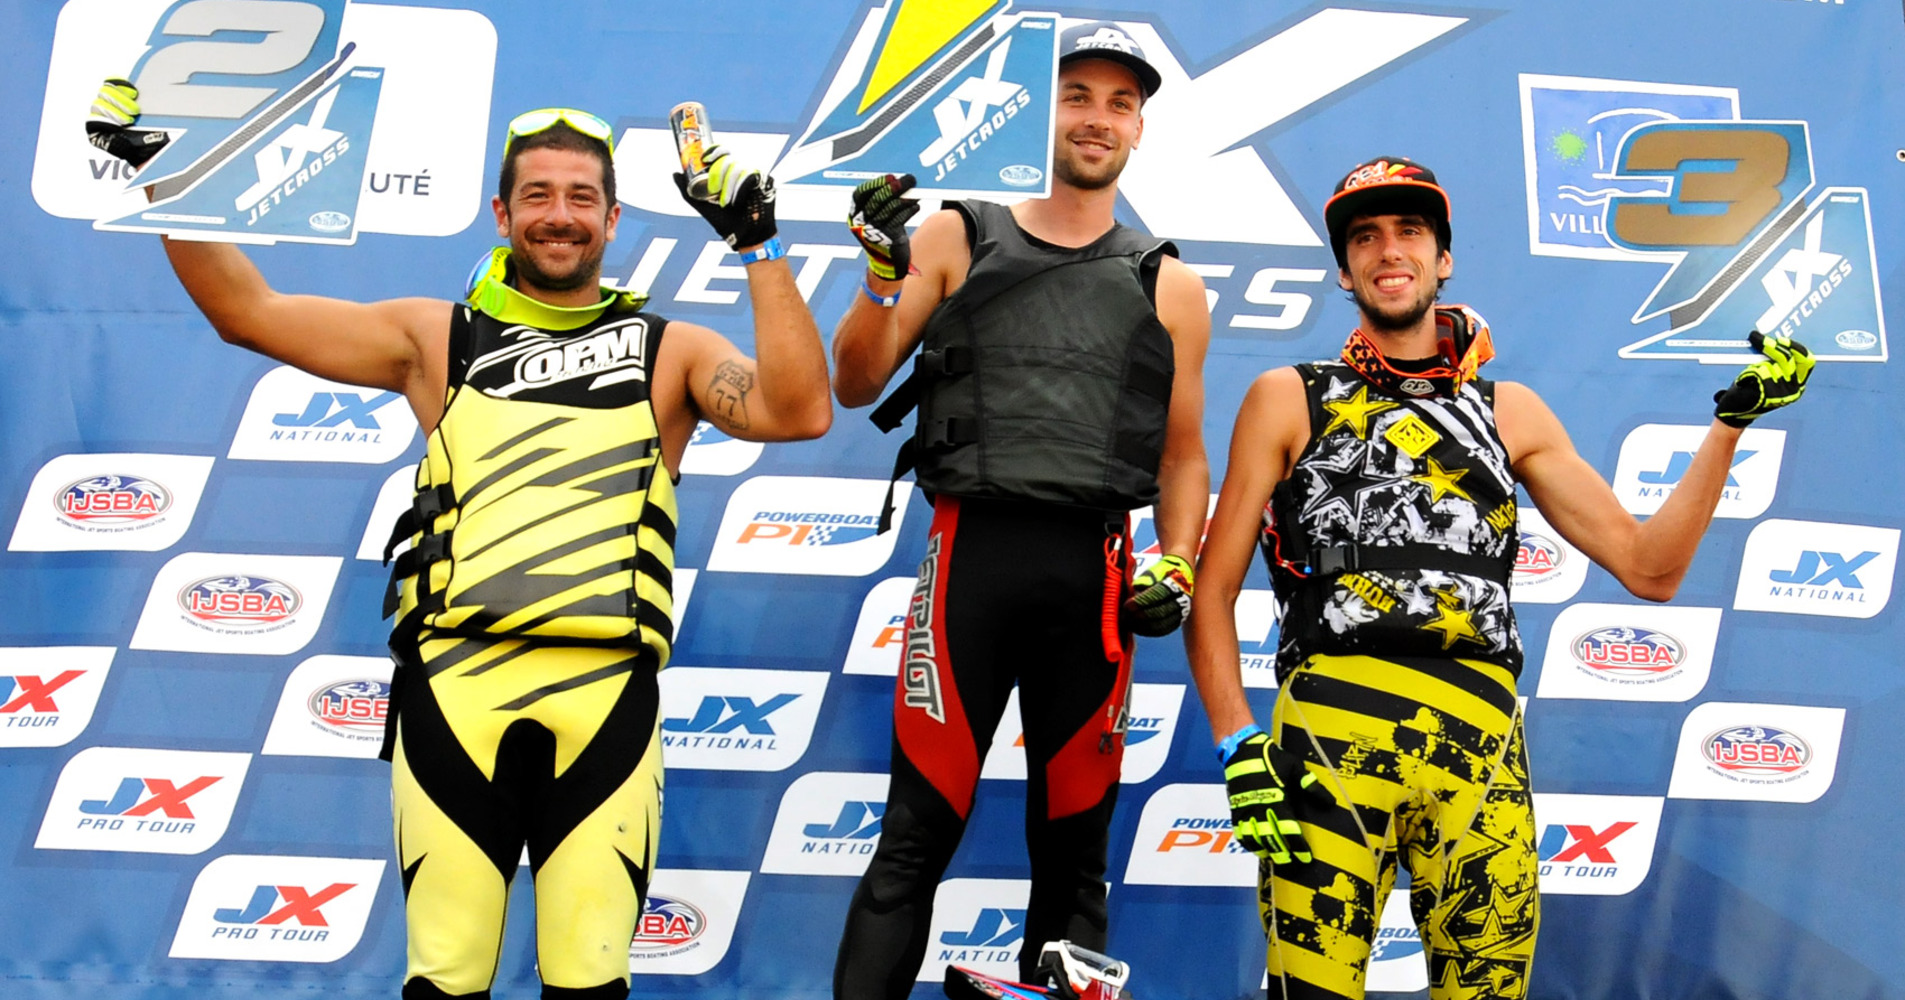 M.Poret (L), Dardillat and Bossche (R) on the podium